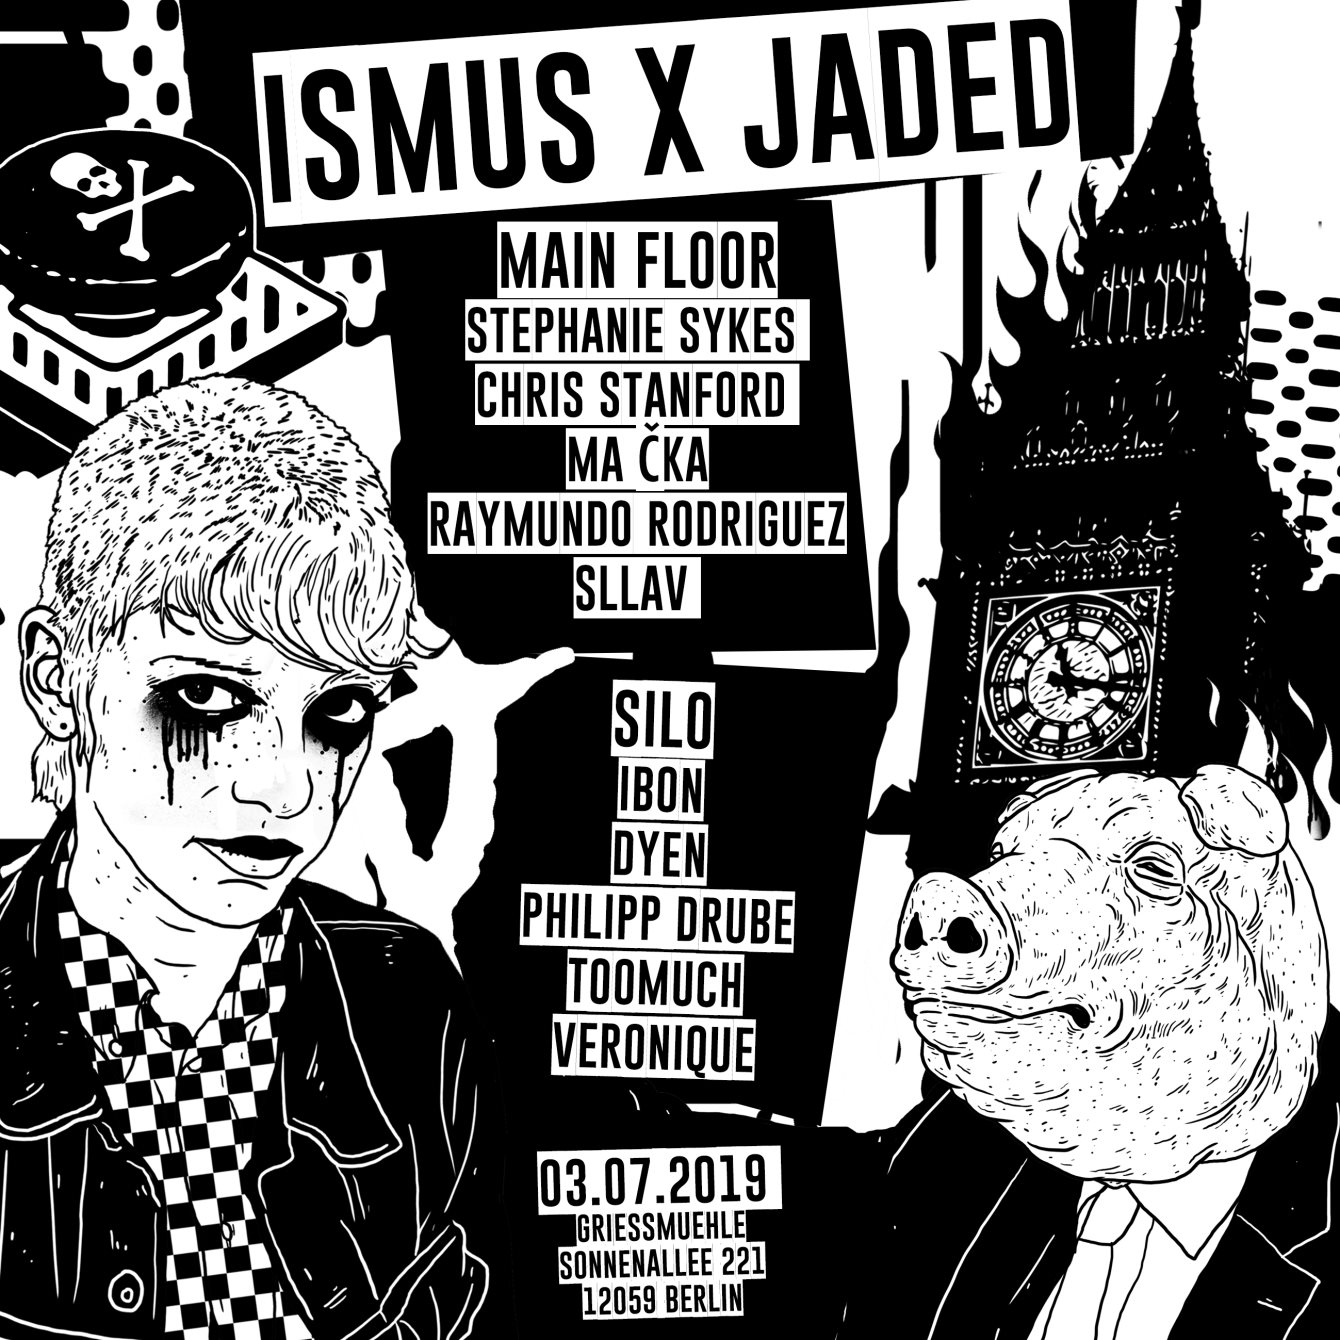 Summer Camp: Ismus x Jaded - Flyer front